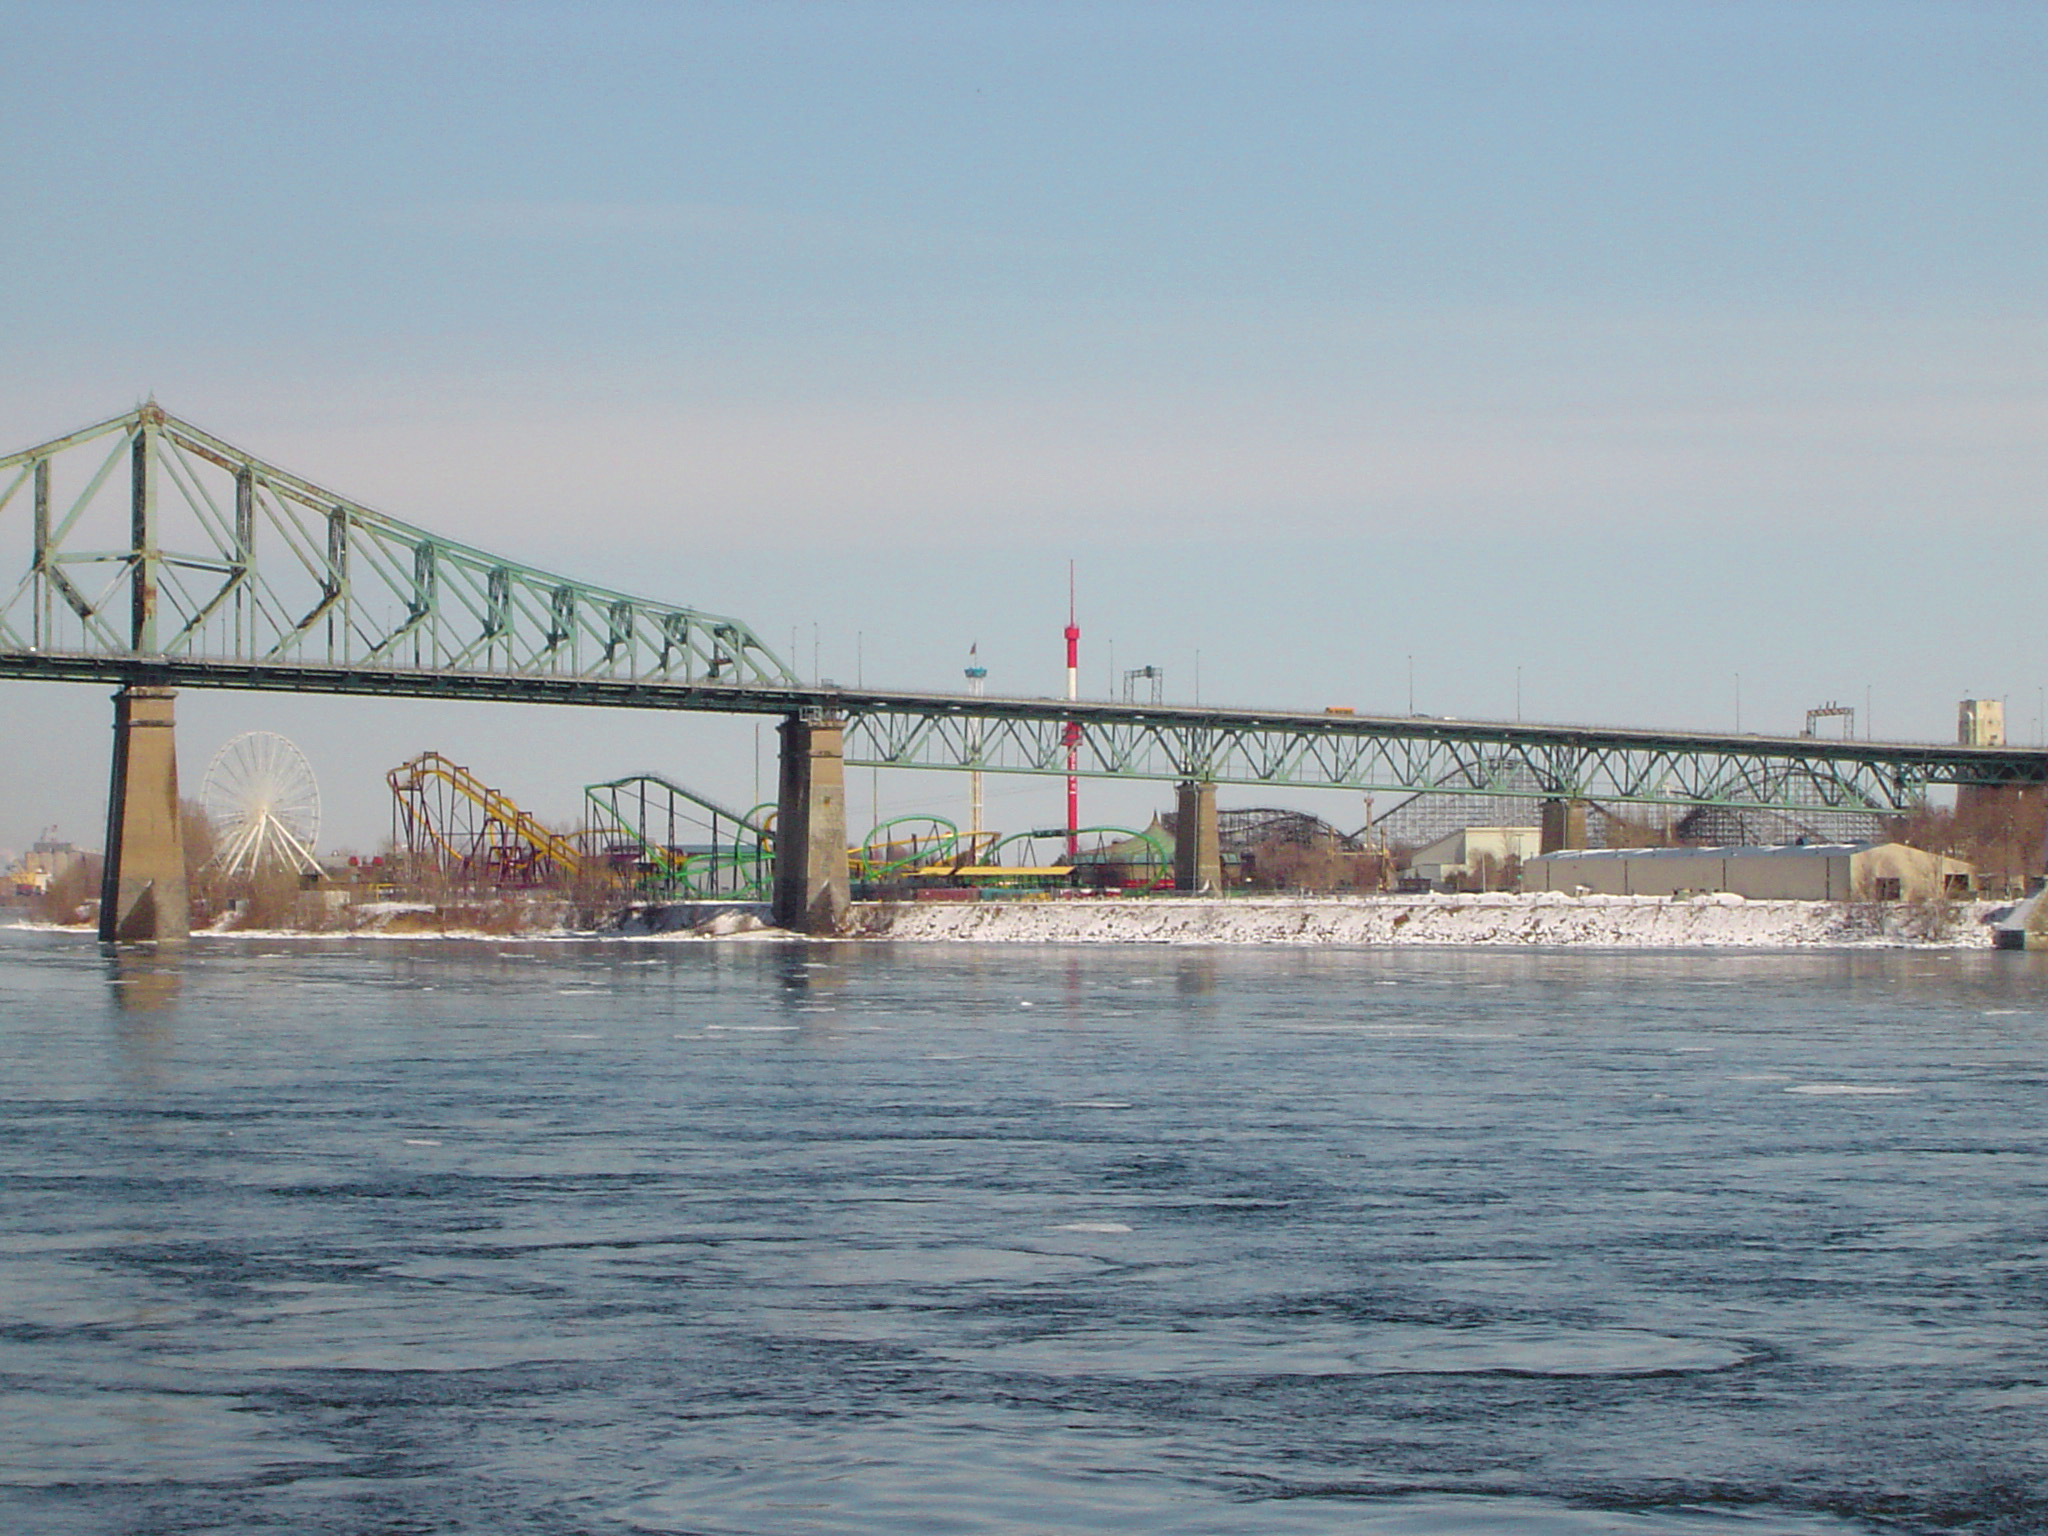 La Ronde Theme Park and Bridge over St Lawrence River in Montreal, Quebec, Canada